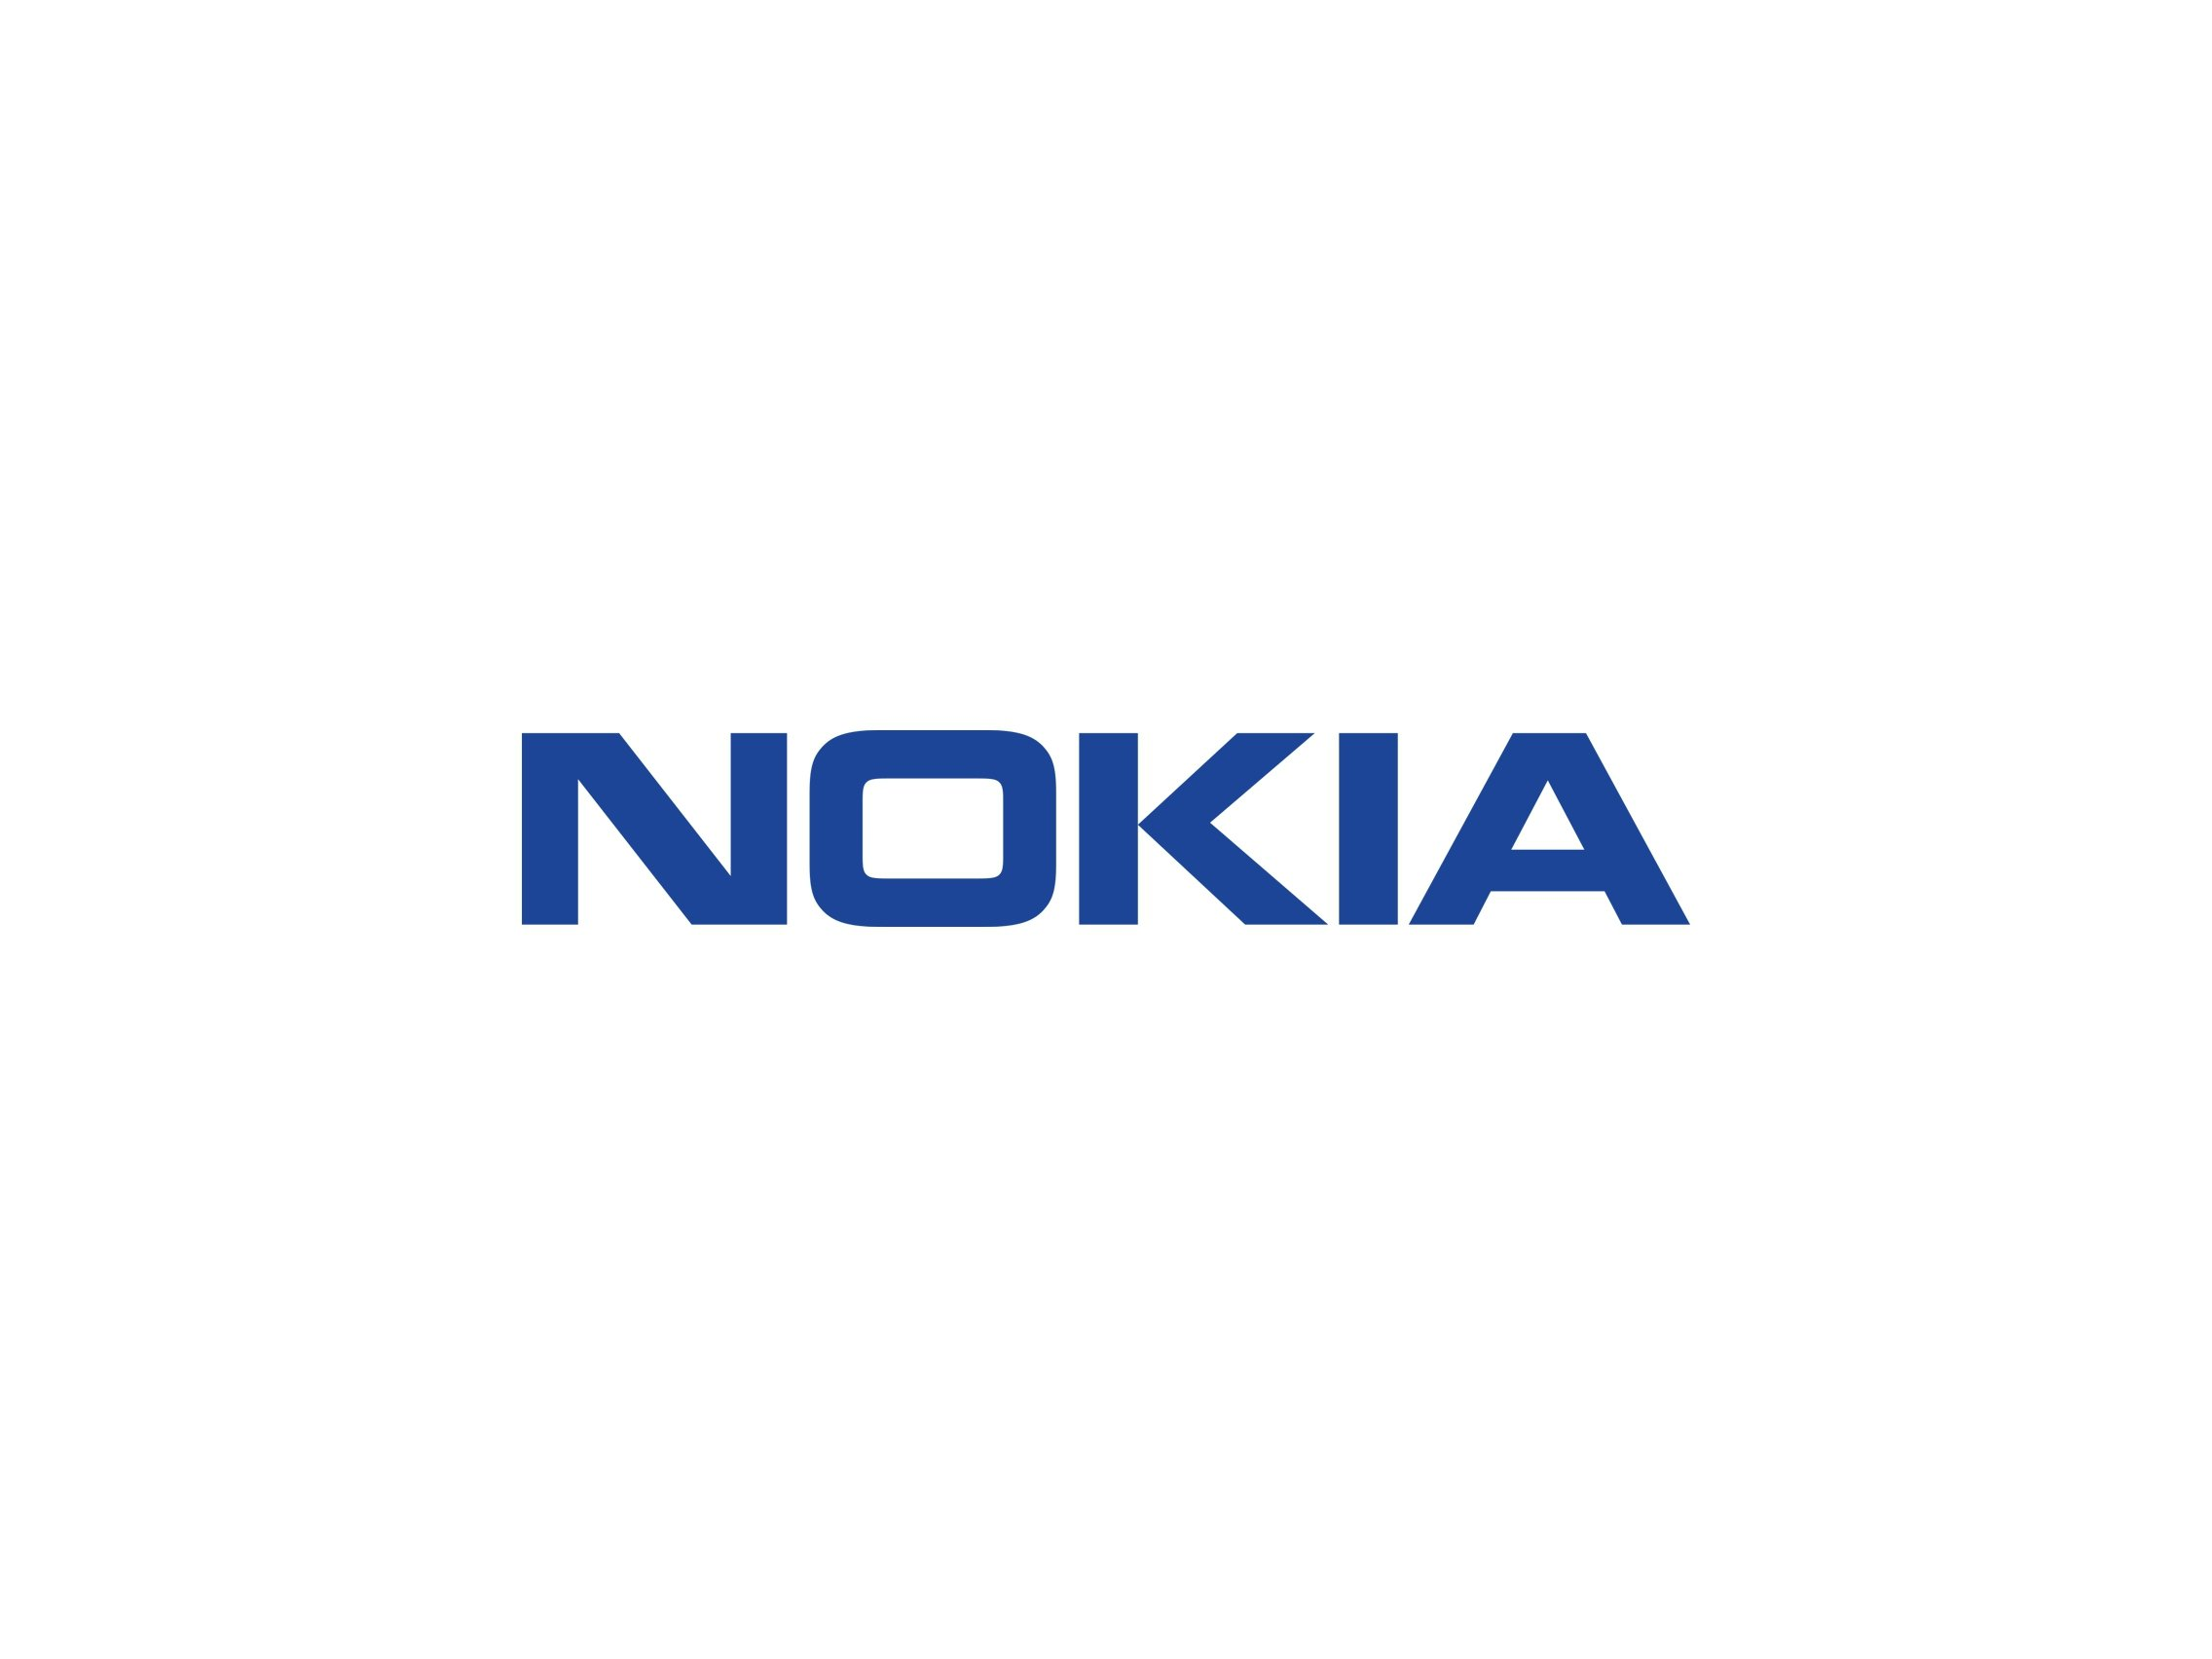 Nokia Wallpapers Images Photos Pictures Backgrounds 2272x1704